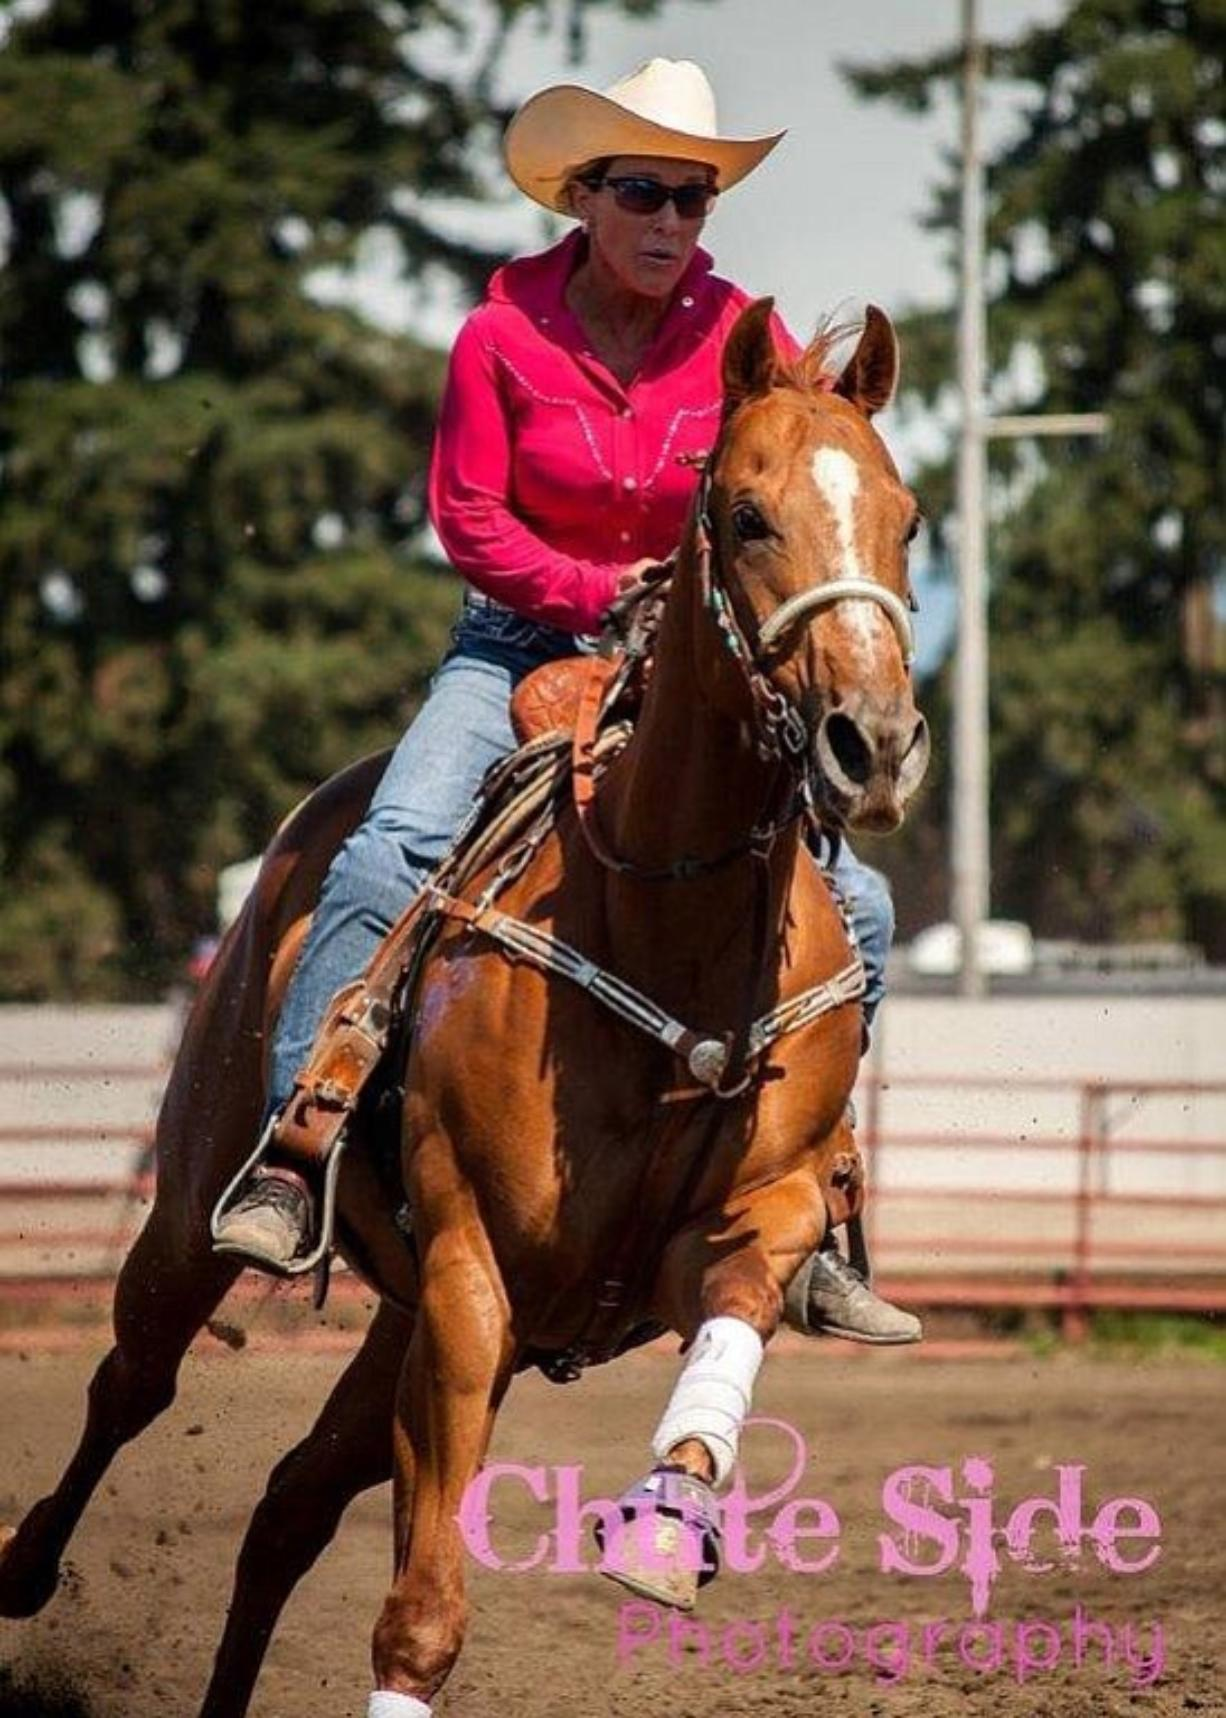 Orchards: Tina Olson, founder of The Chopper Fund, and her horse Dash at the Chasin' For Chopper barrel racing event to raise money for major medical expenses for shelter animals.